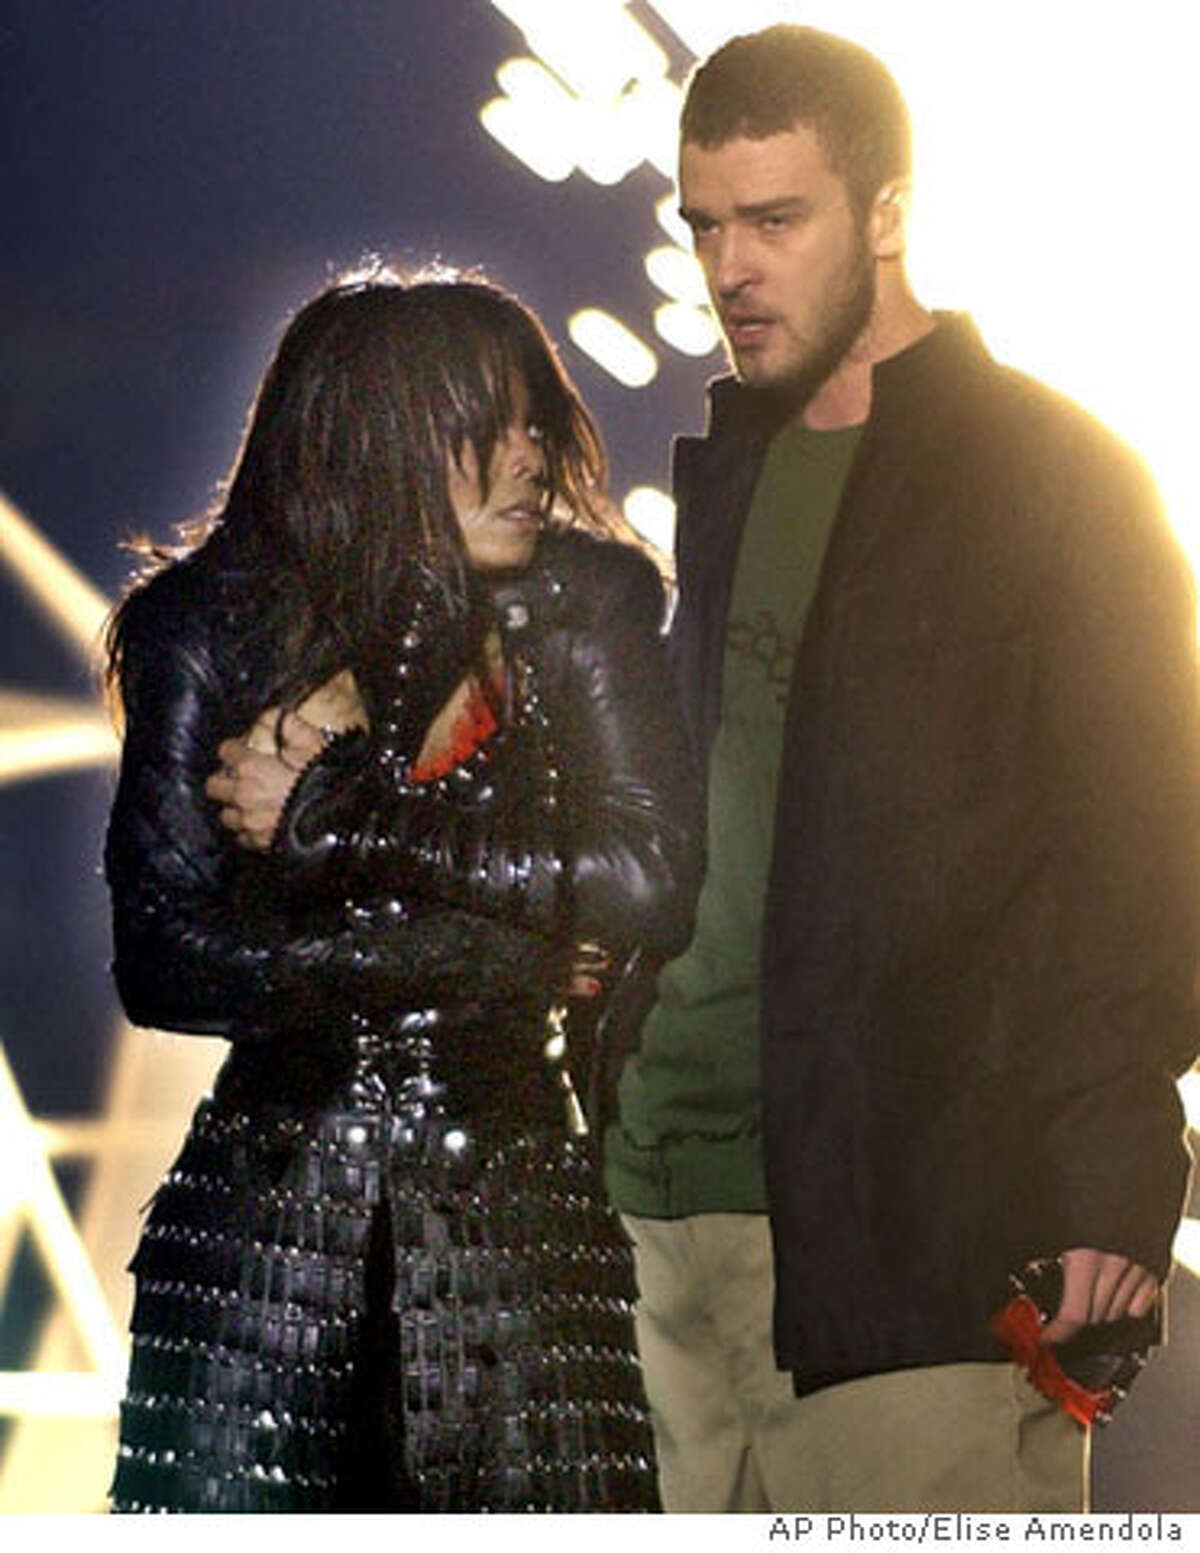 Singer Janet Jackson, left, covers her breast after her outfit came undone during a number with Justin Timberlake during the halftime show of Super Bowl XXXVIII in Houston, Sunday, Feb. 1, 2004. (AP Photo/Elise Amendola) ALSO RAN: 2/3/2004 Undone: Janet Jackson and Justin Timberlake are apologizing for what they insist was an accidental exposure of her breast during the halftime show.